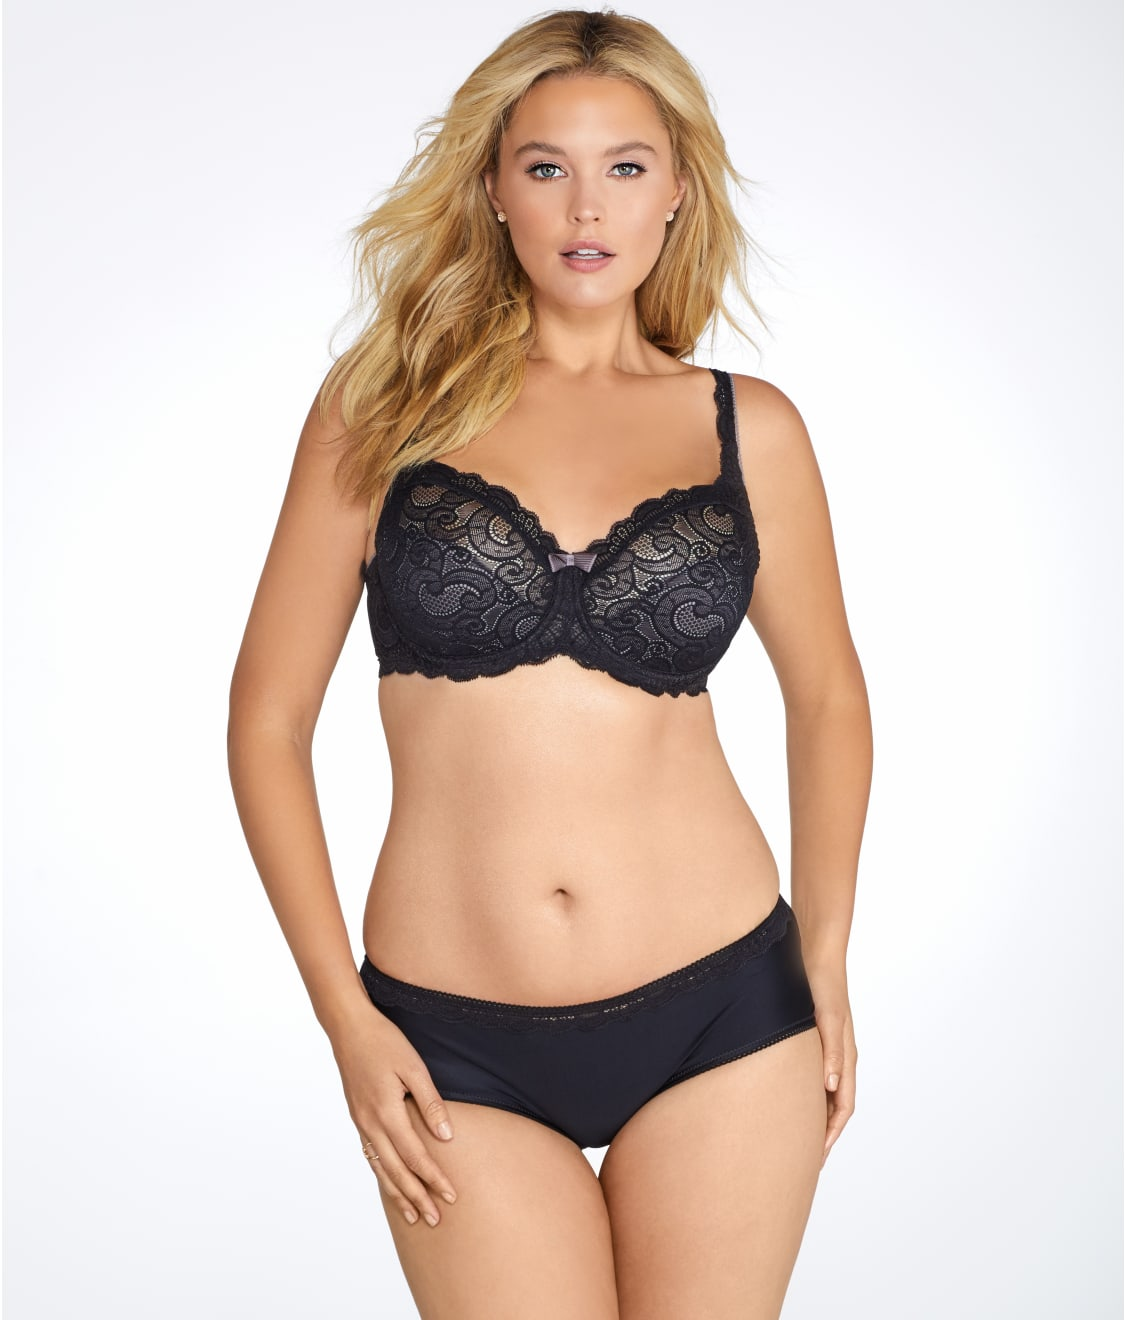 8a993806a8a50 Playtex Love My Curves Lace And Lift Bra